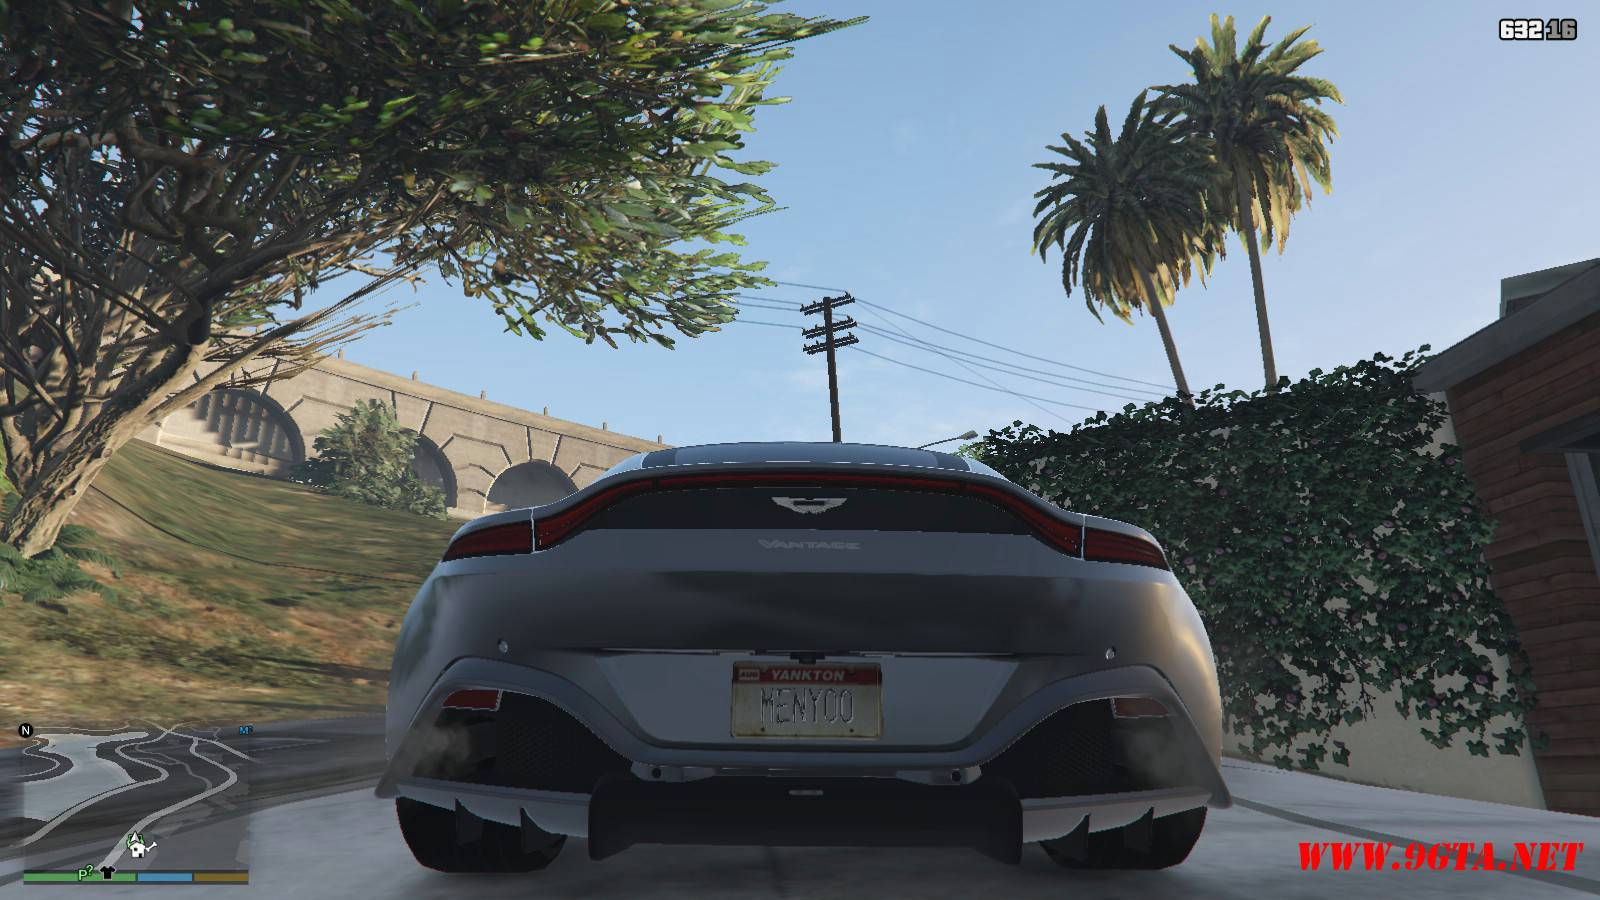 2019 Aston Martin Vantage v3.0 Mod For GTA5 (5)